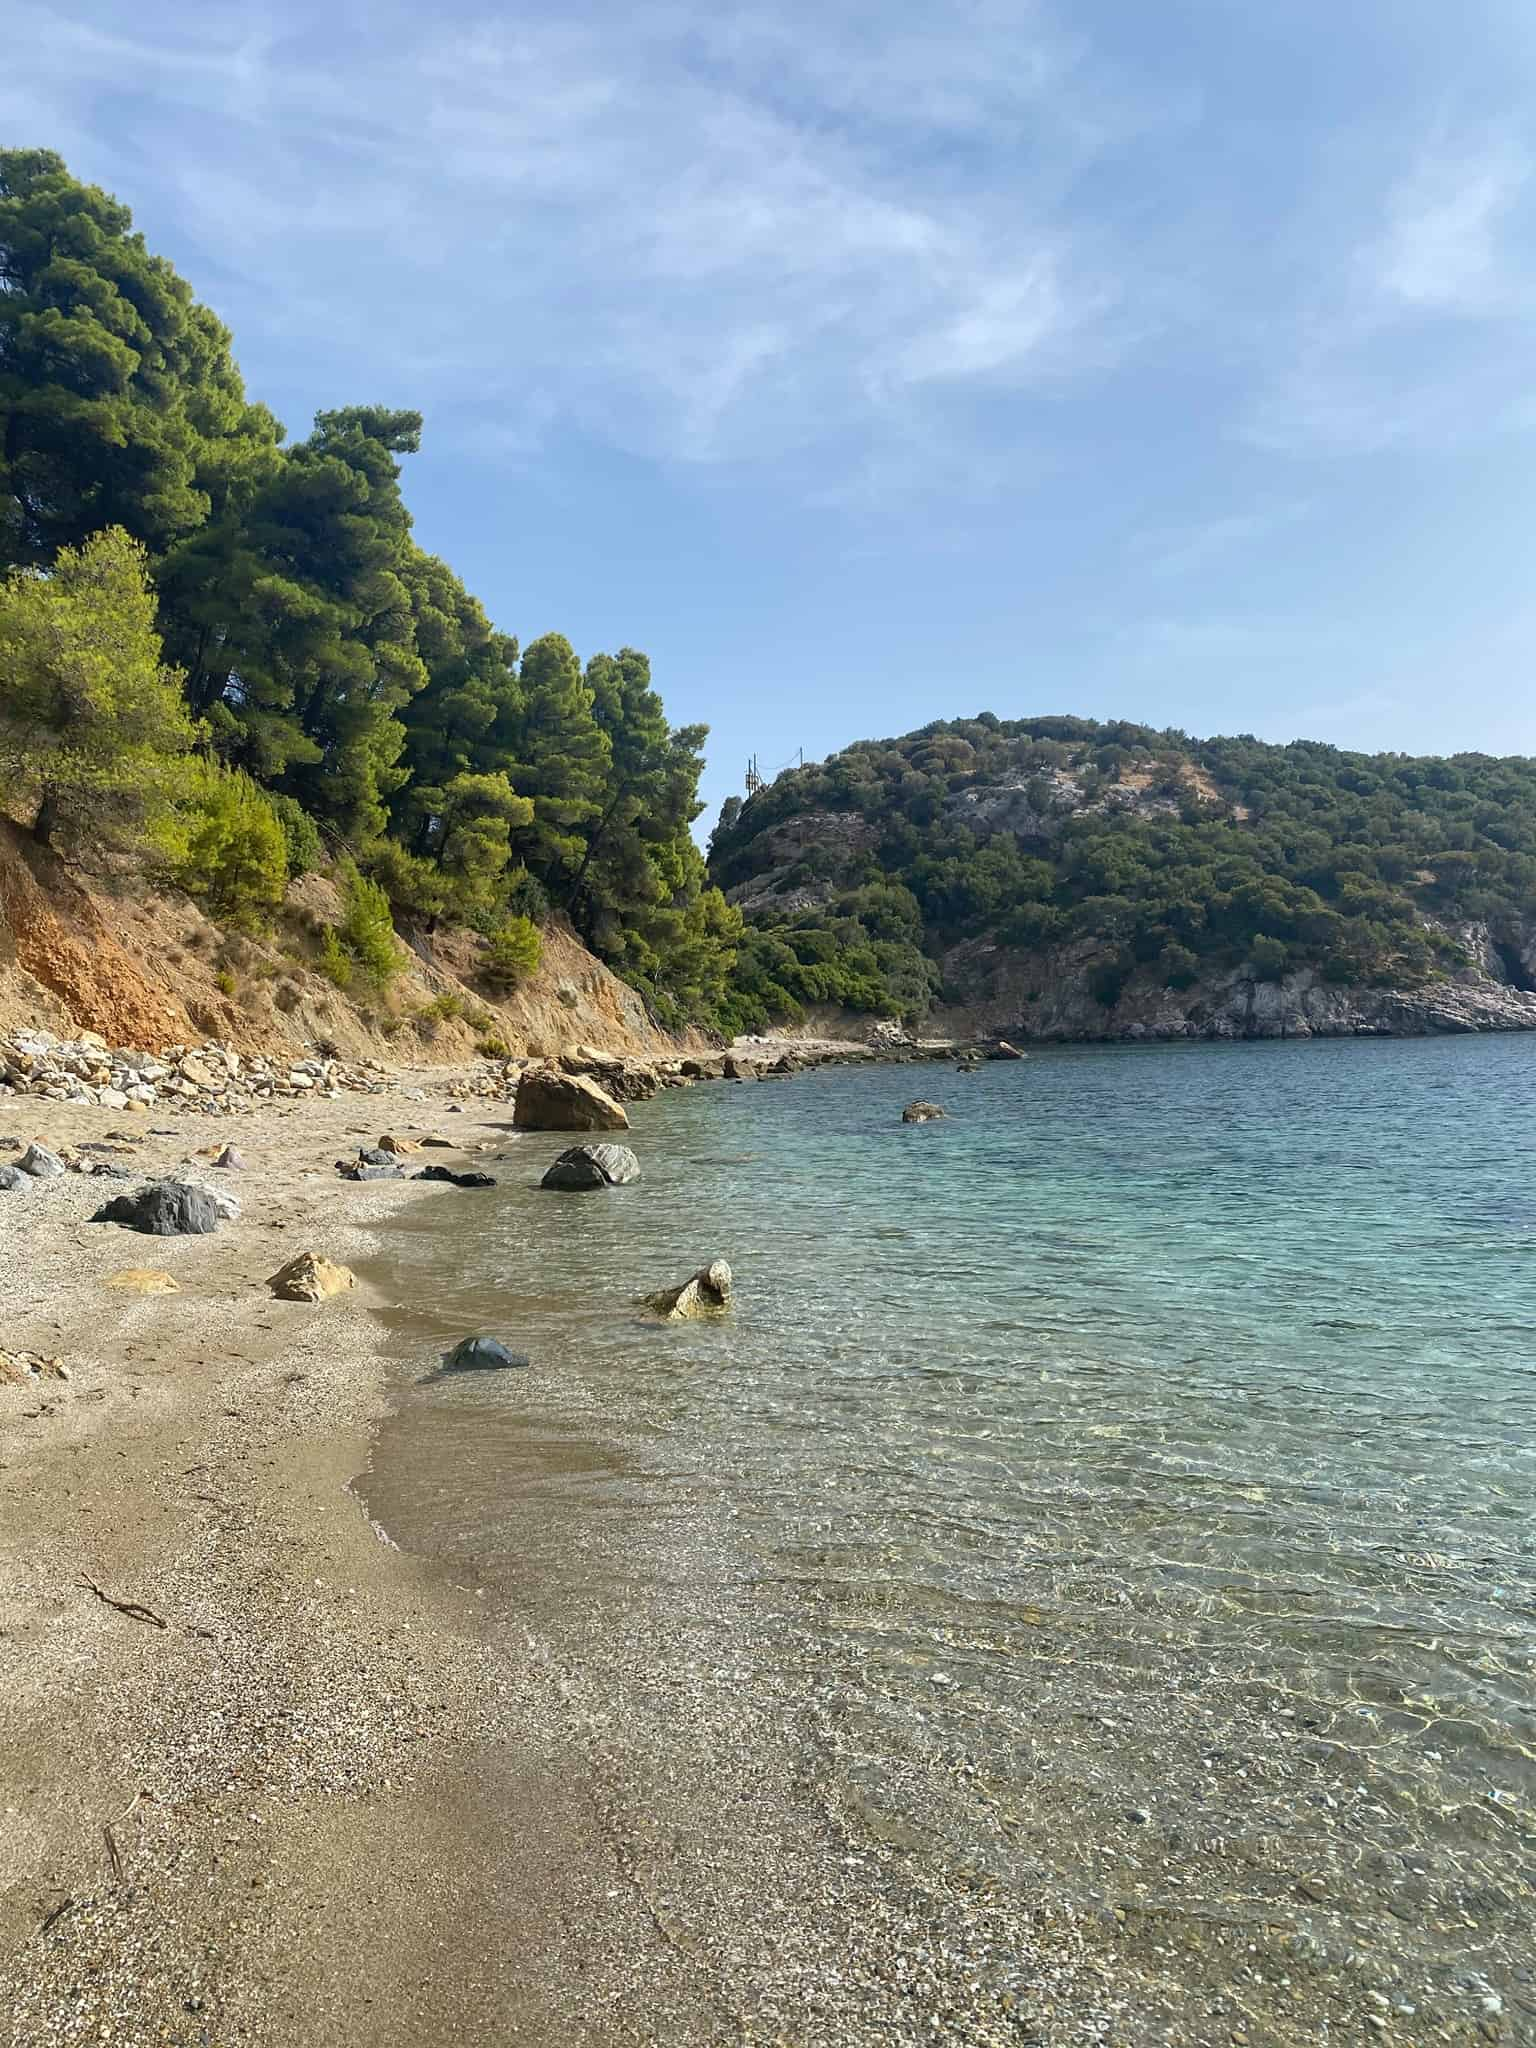 Where to stay in Skopelos: Stafylos